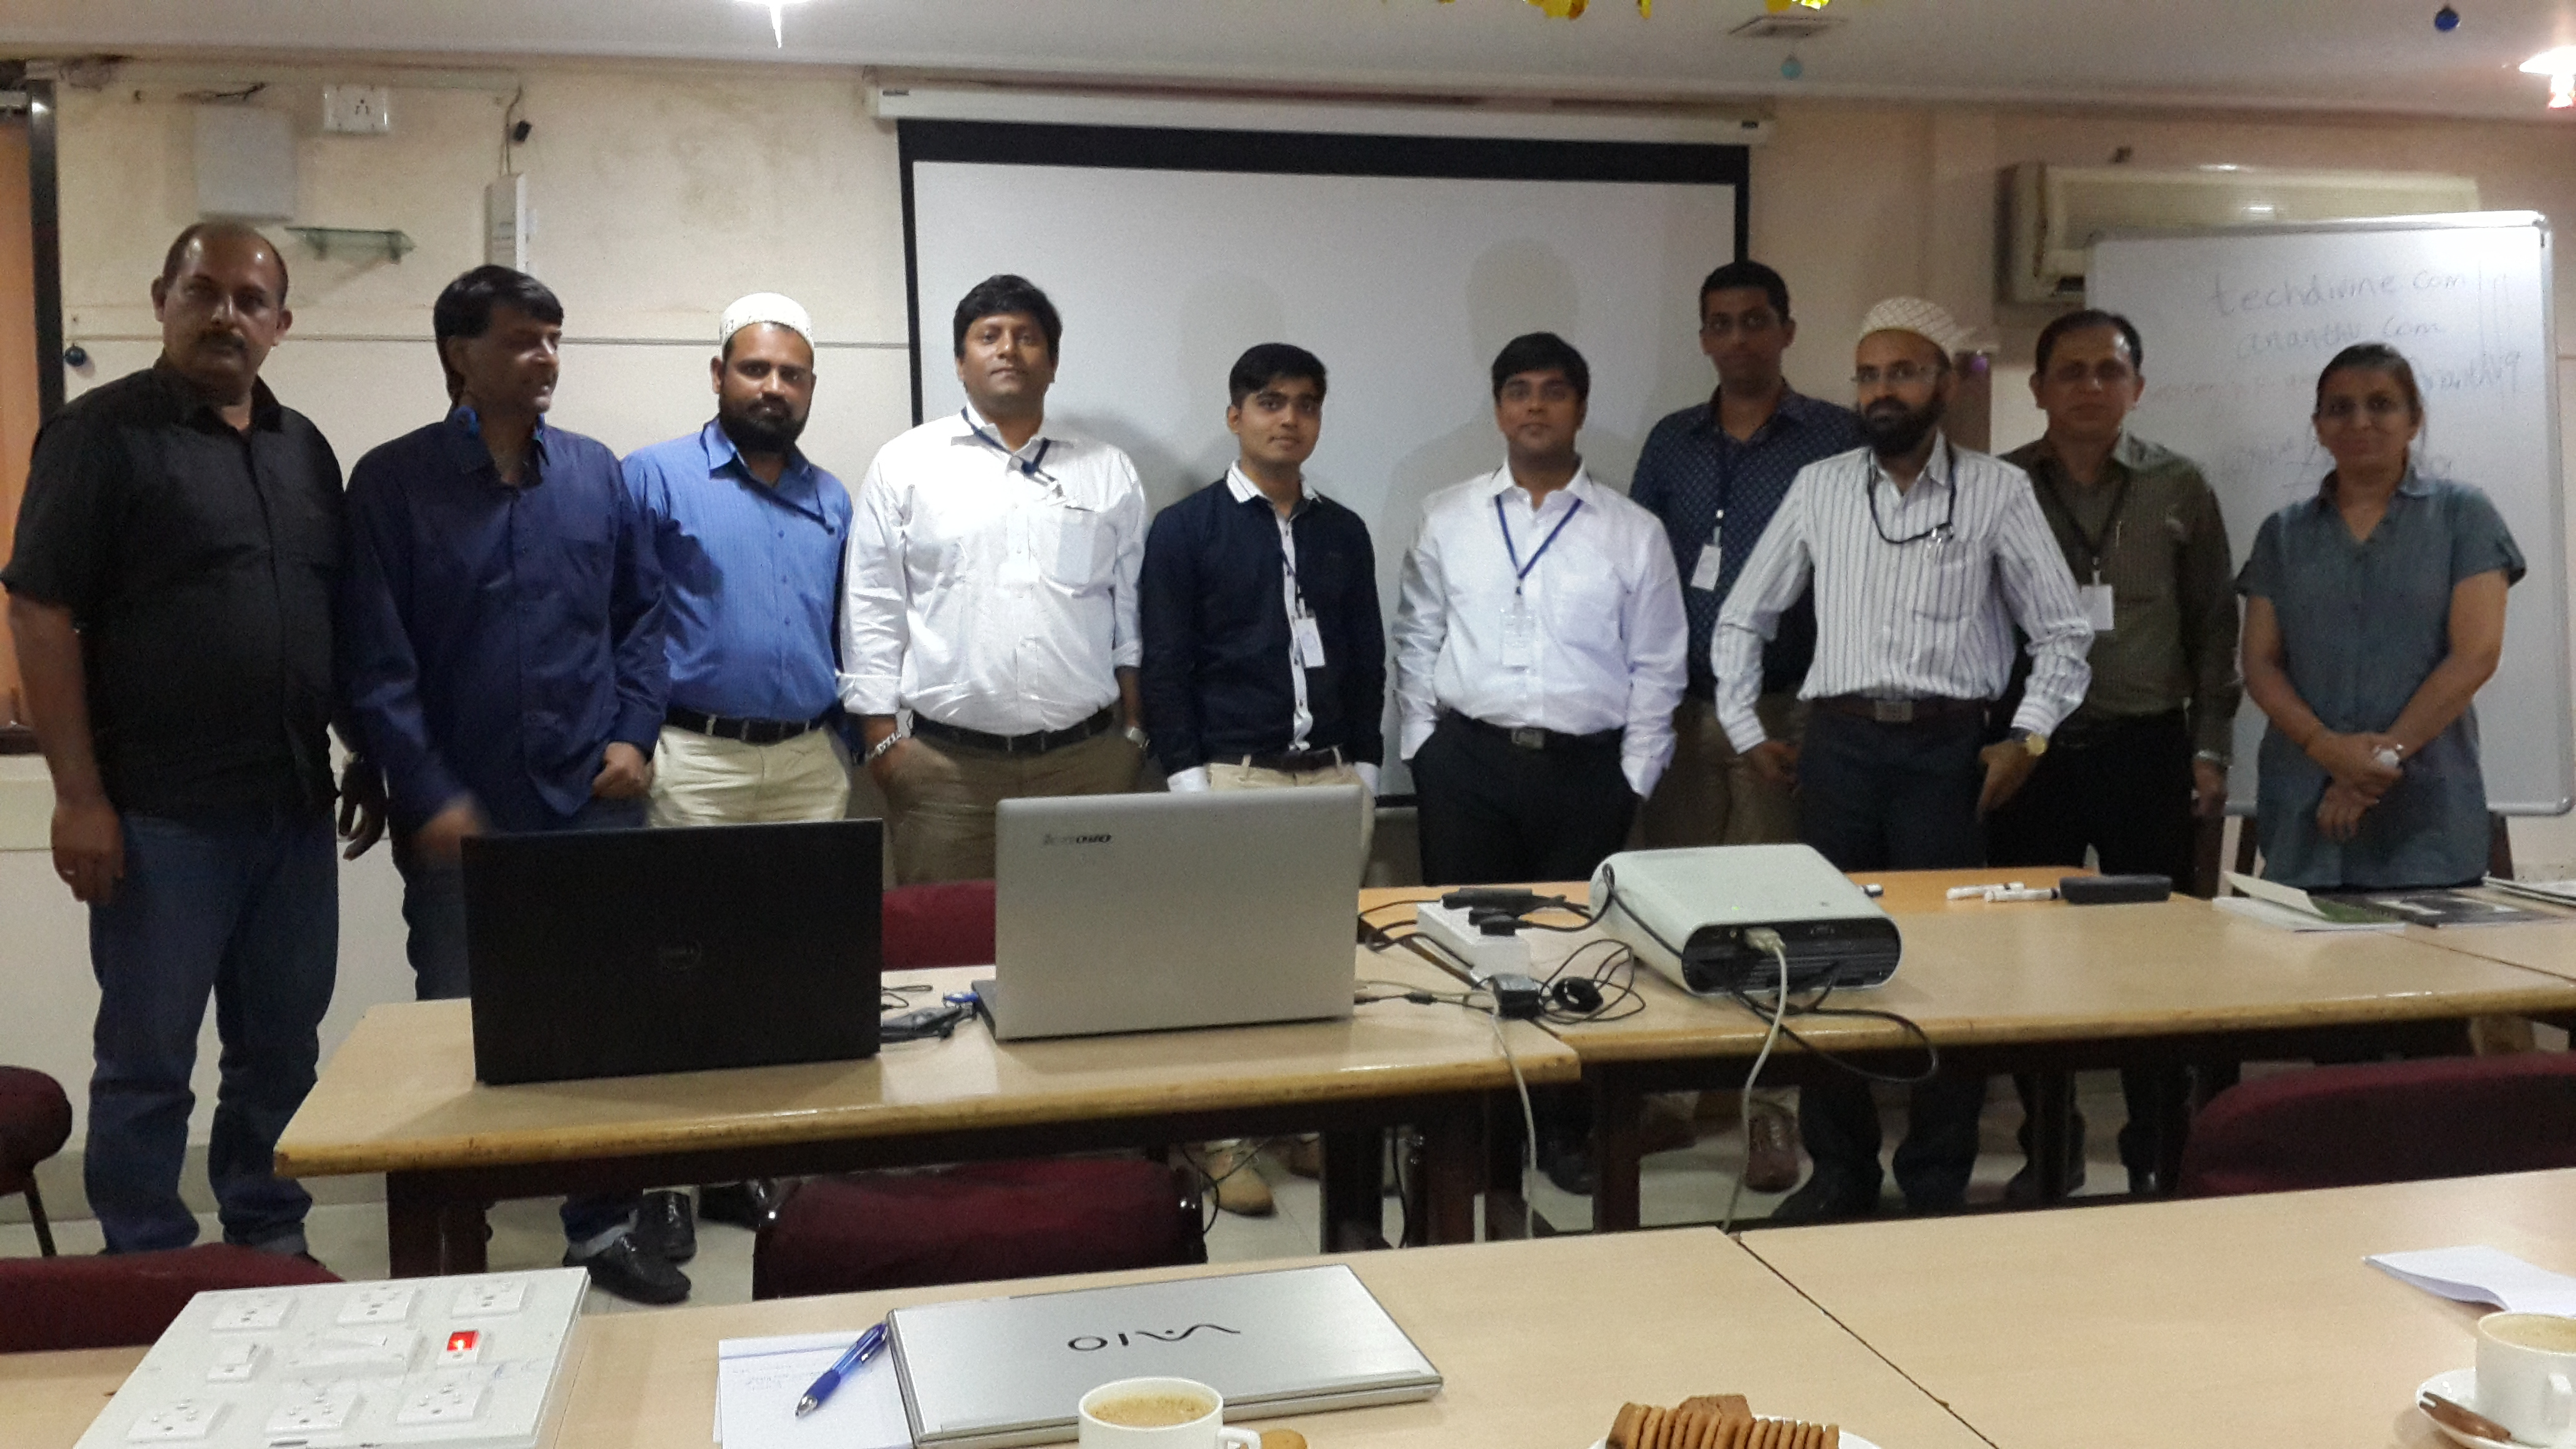 Digital Marketing and Social media marketing workshop in Mumbai by Ananth V